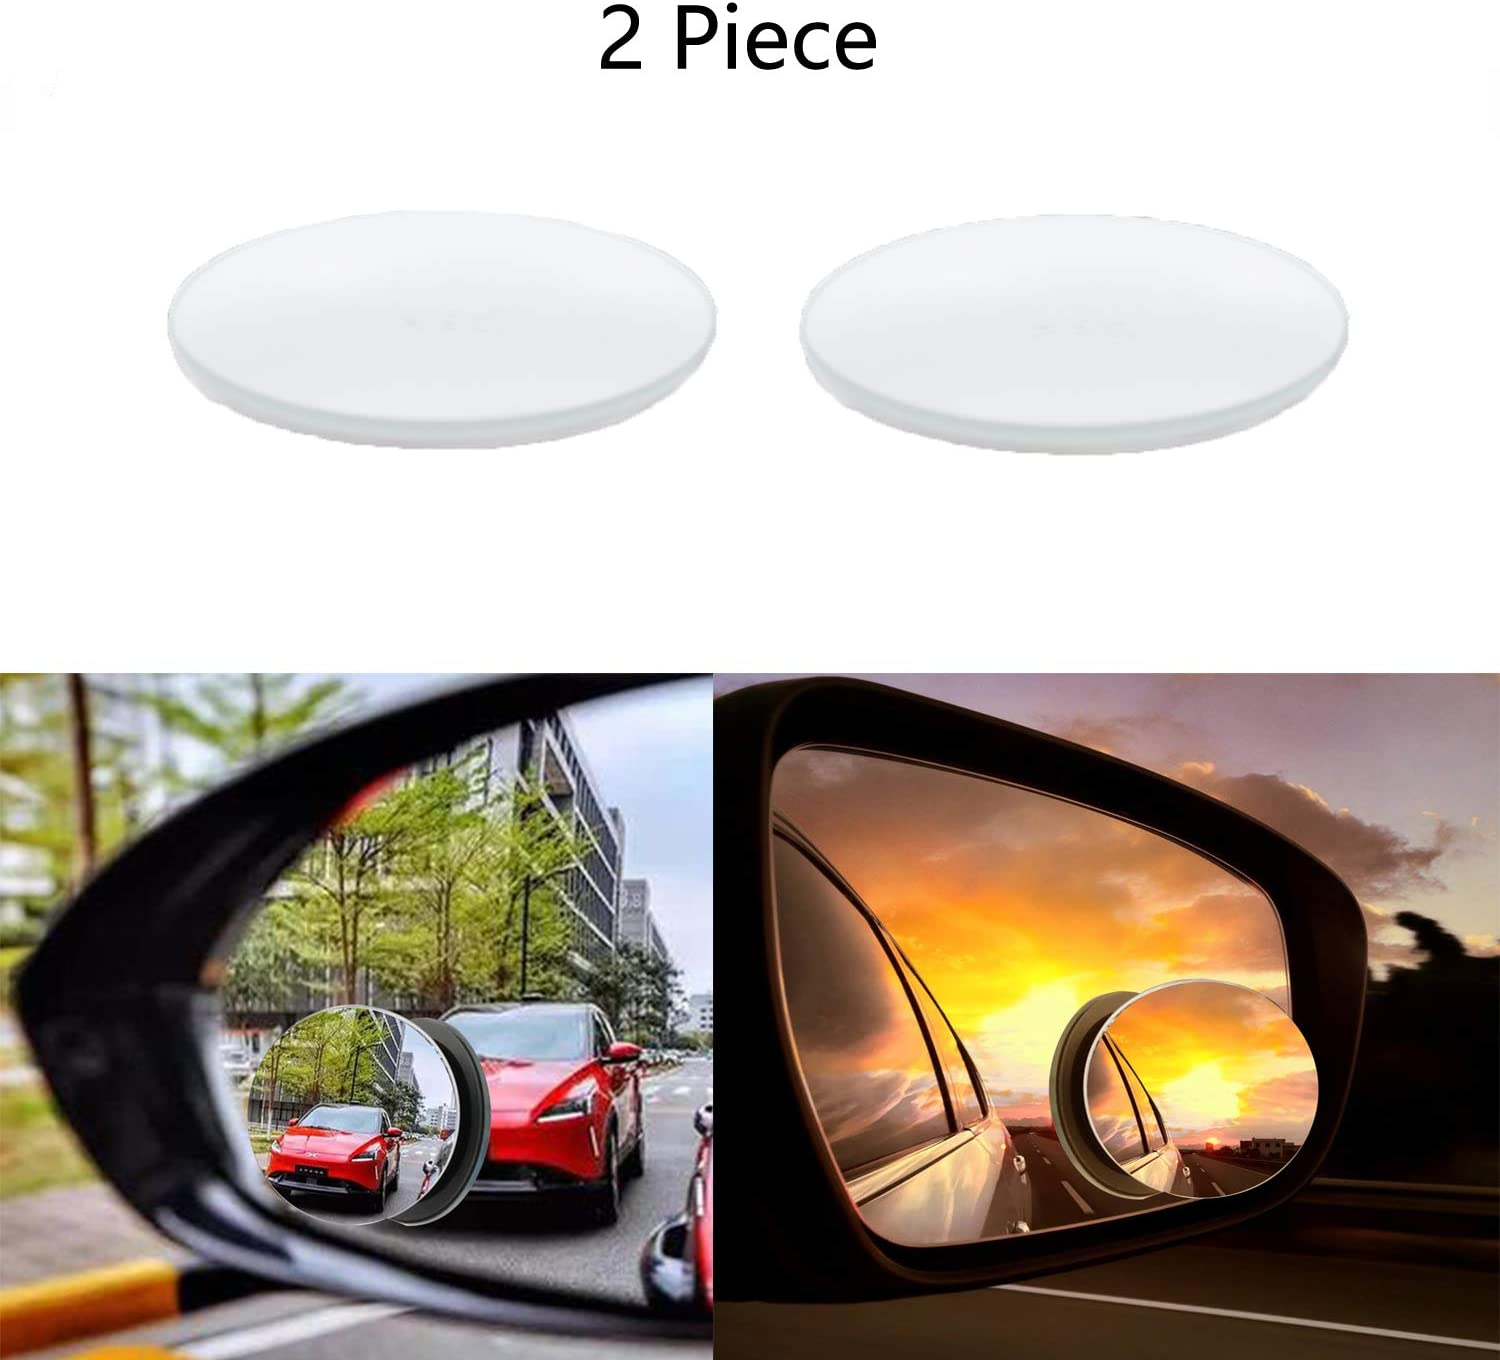 LiXiongBao 2 Pcs Self-Adhesive 360 Degree Adjustable Automotive Blind Spot Round Mirror Blind Spot Mirror Kit Aluminum Rear View Blind Spot Mirrors for All Cars Motorcycles Trucks Snowmobiles